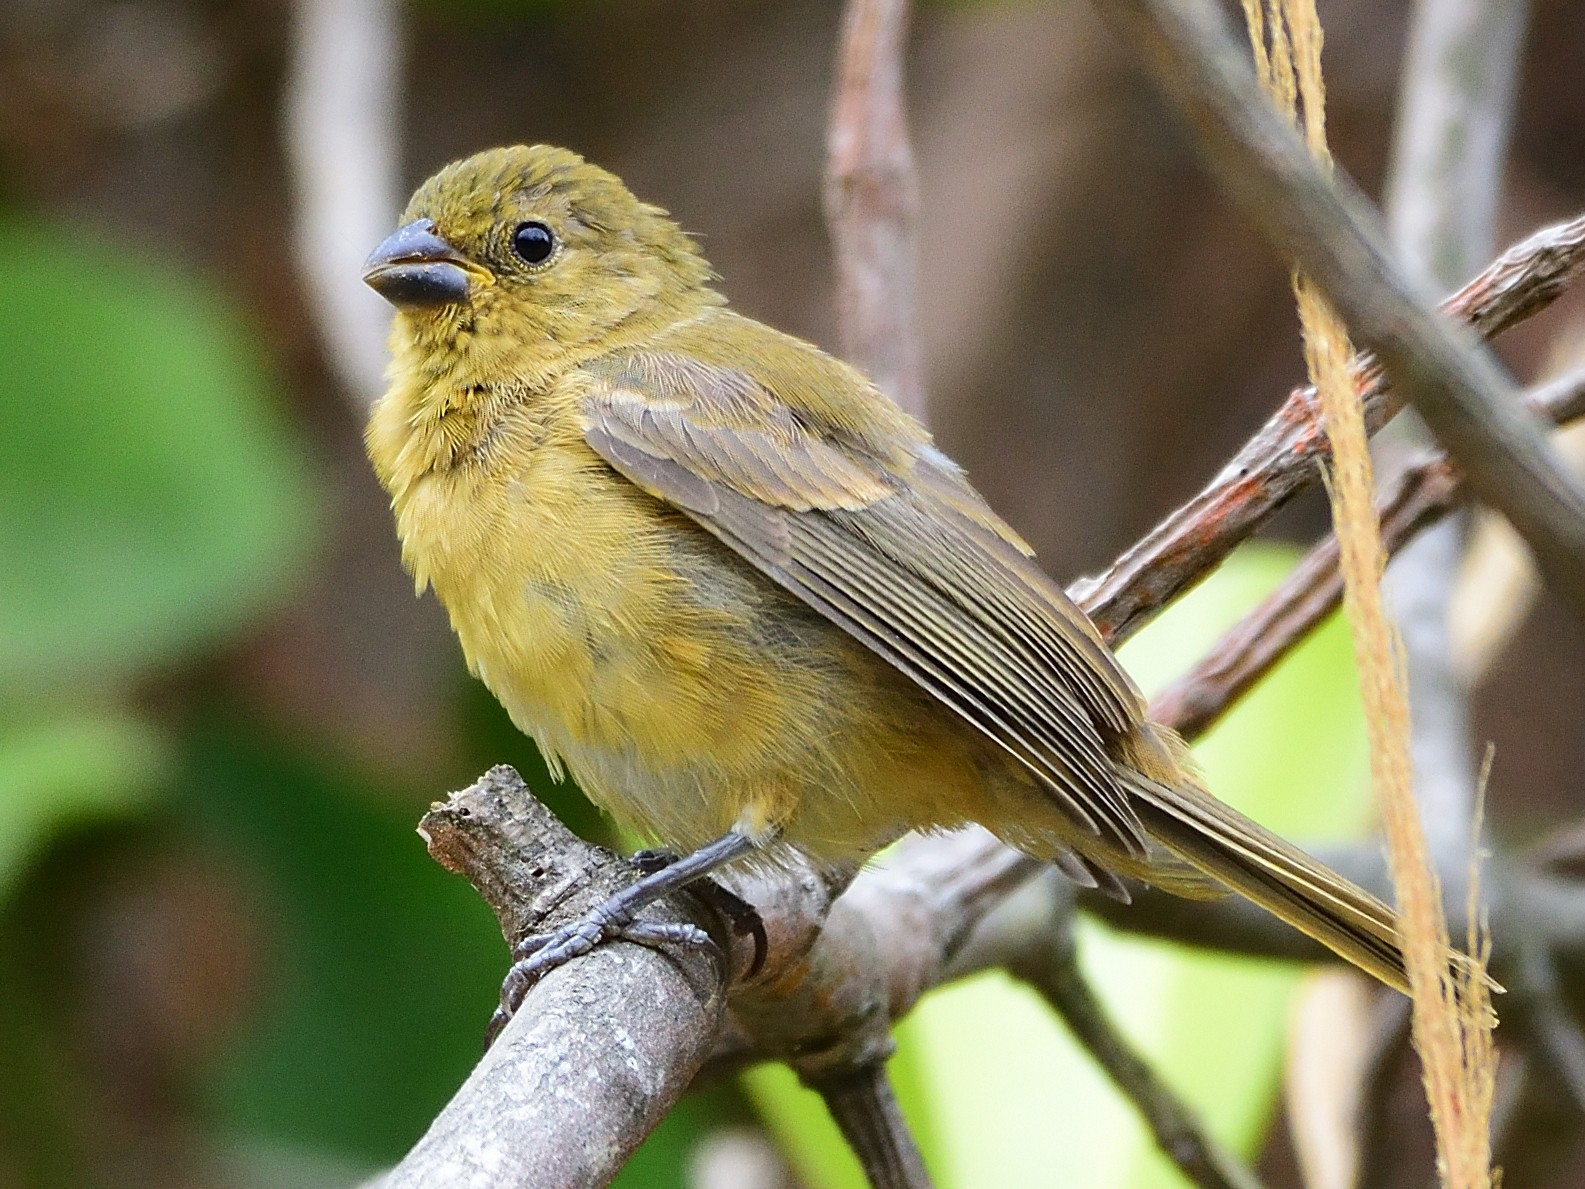 Yellow-bellied Seedeater - Ad Konings